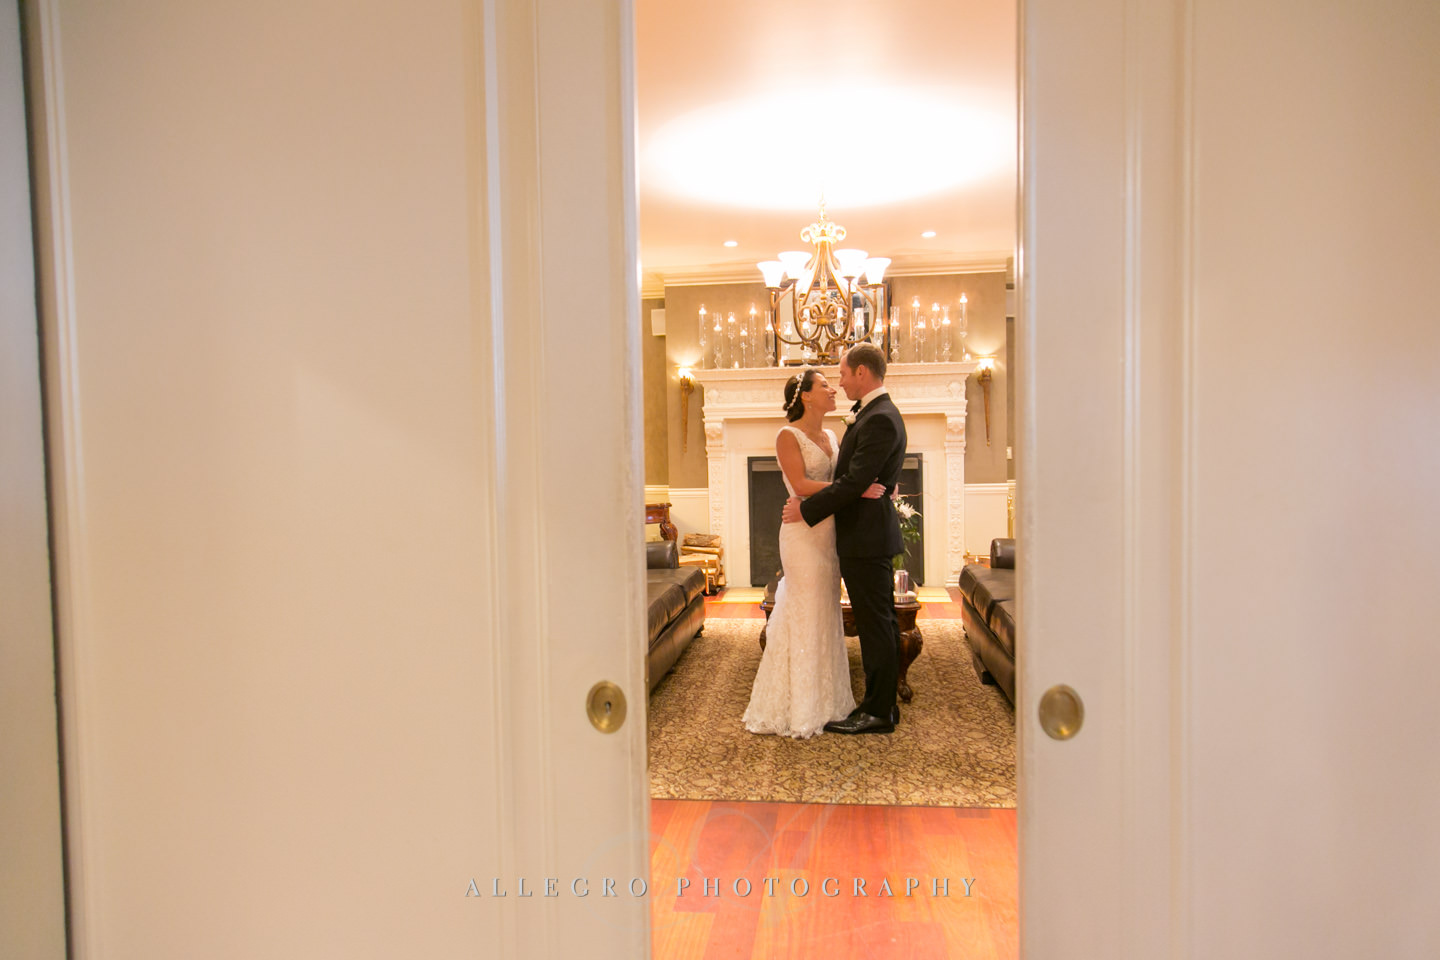 a quiet moment before the ketubah signing -photo by Allegro Photography